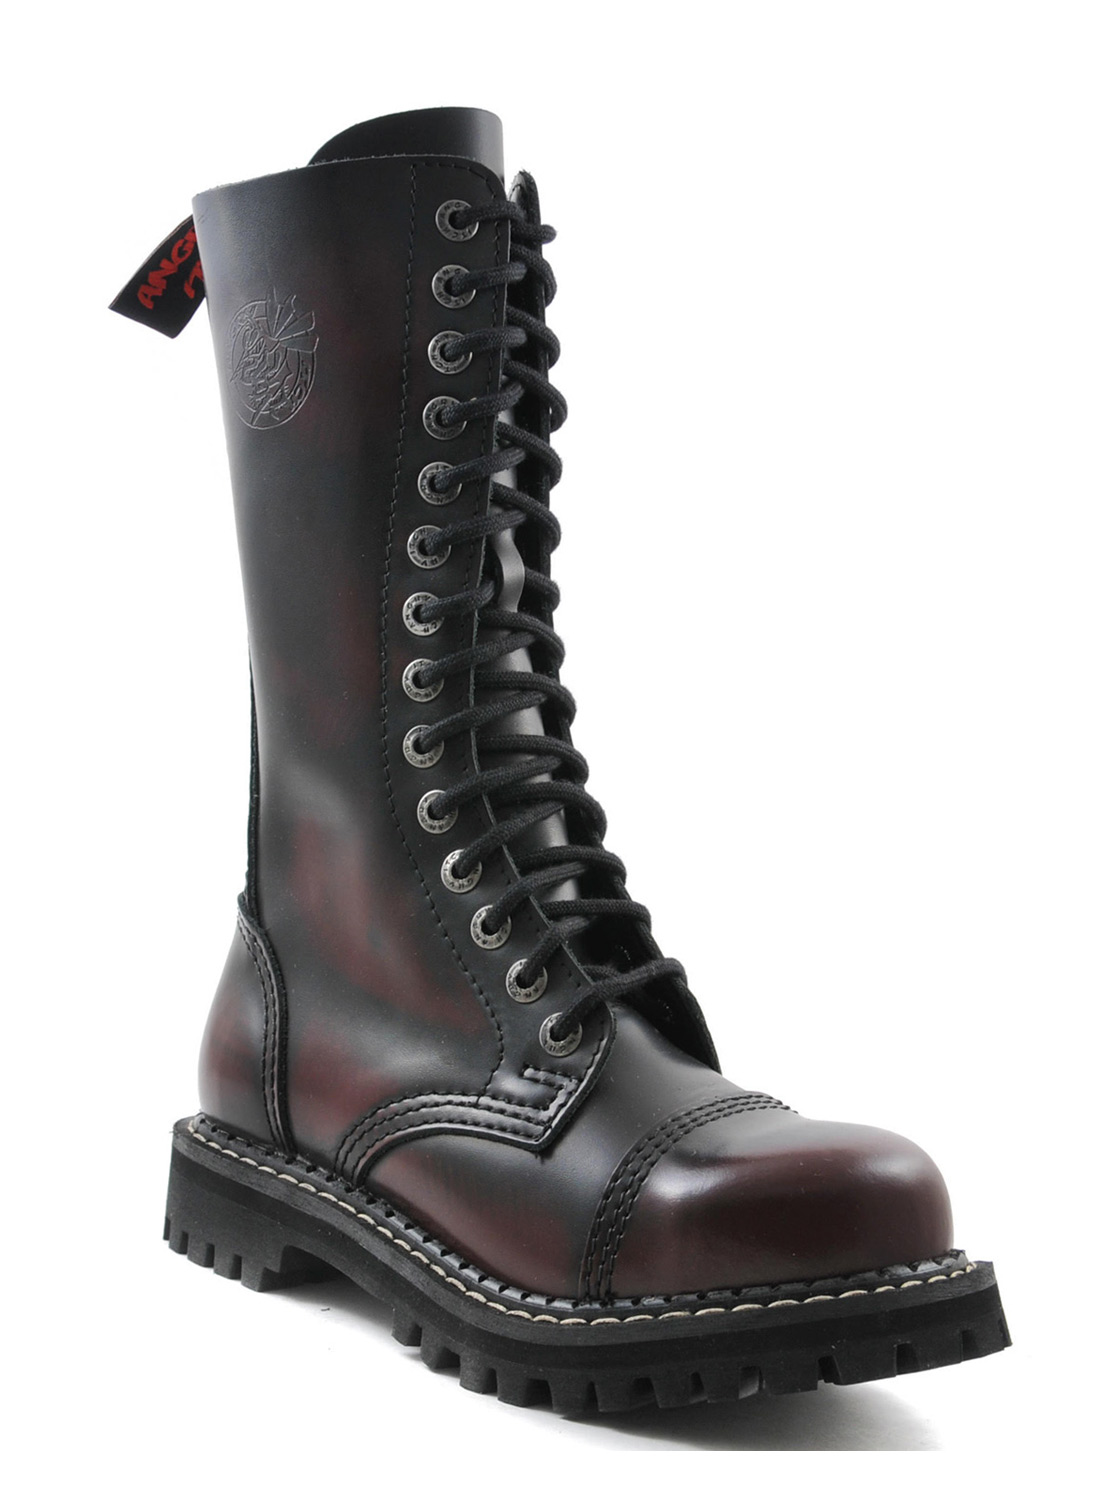 Angry Itch 14 Eye Steel Toe Boots Burgundy Leather